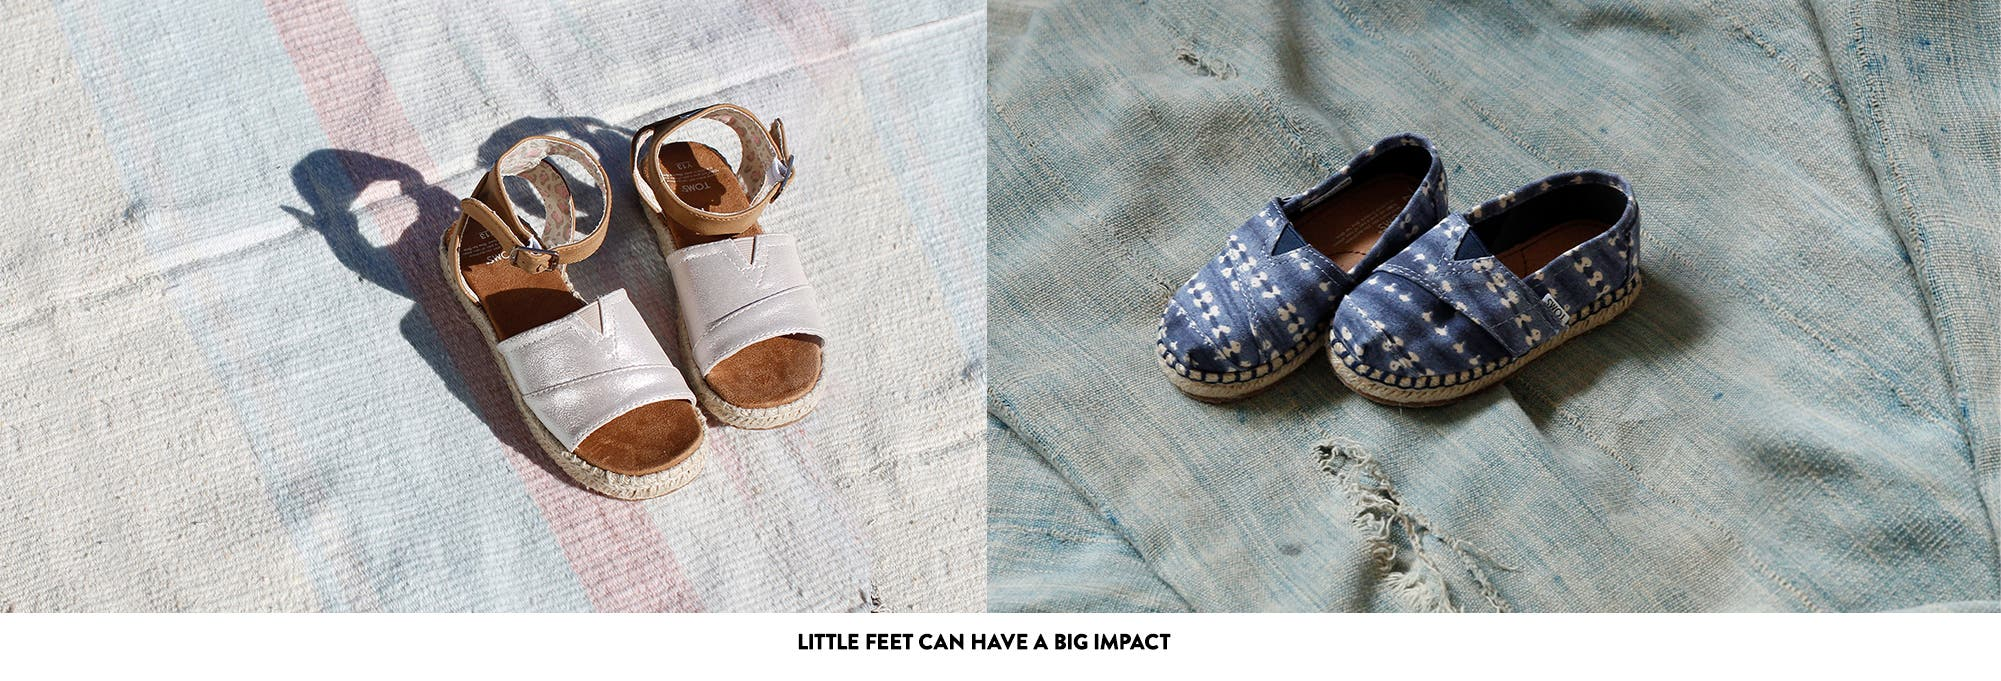 Little feet can have a big impact. TOMS kids' shoes.